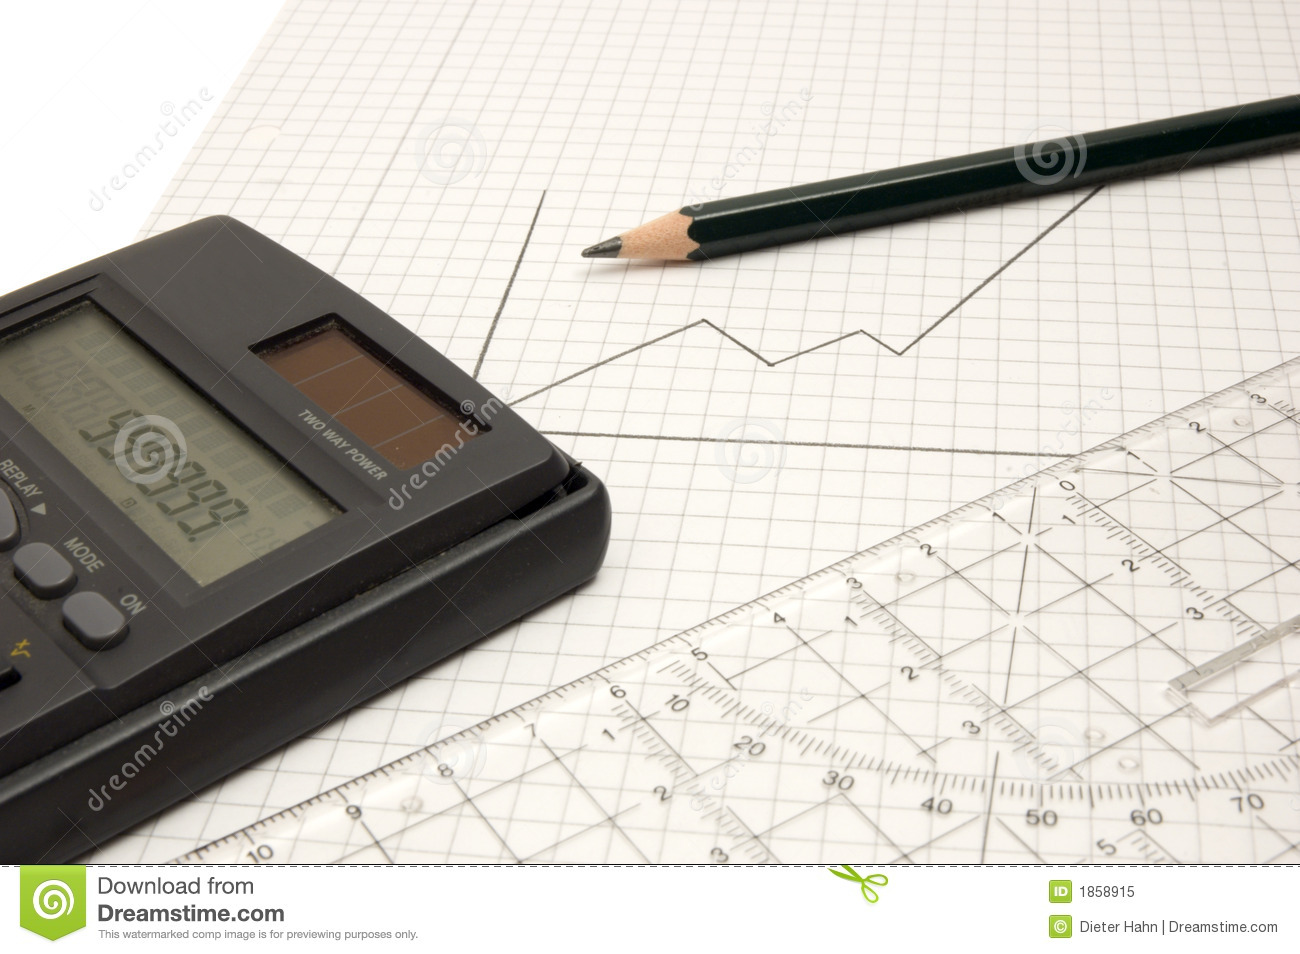 calculator pencil and ruler stock image image of hand keypad 1858915